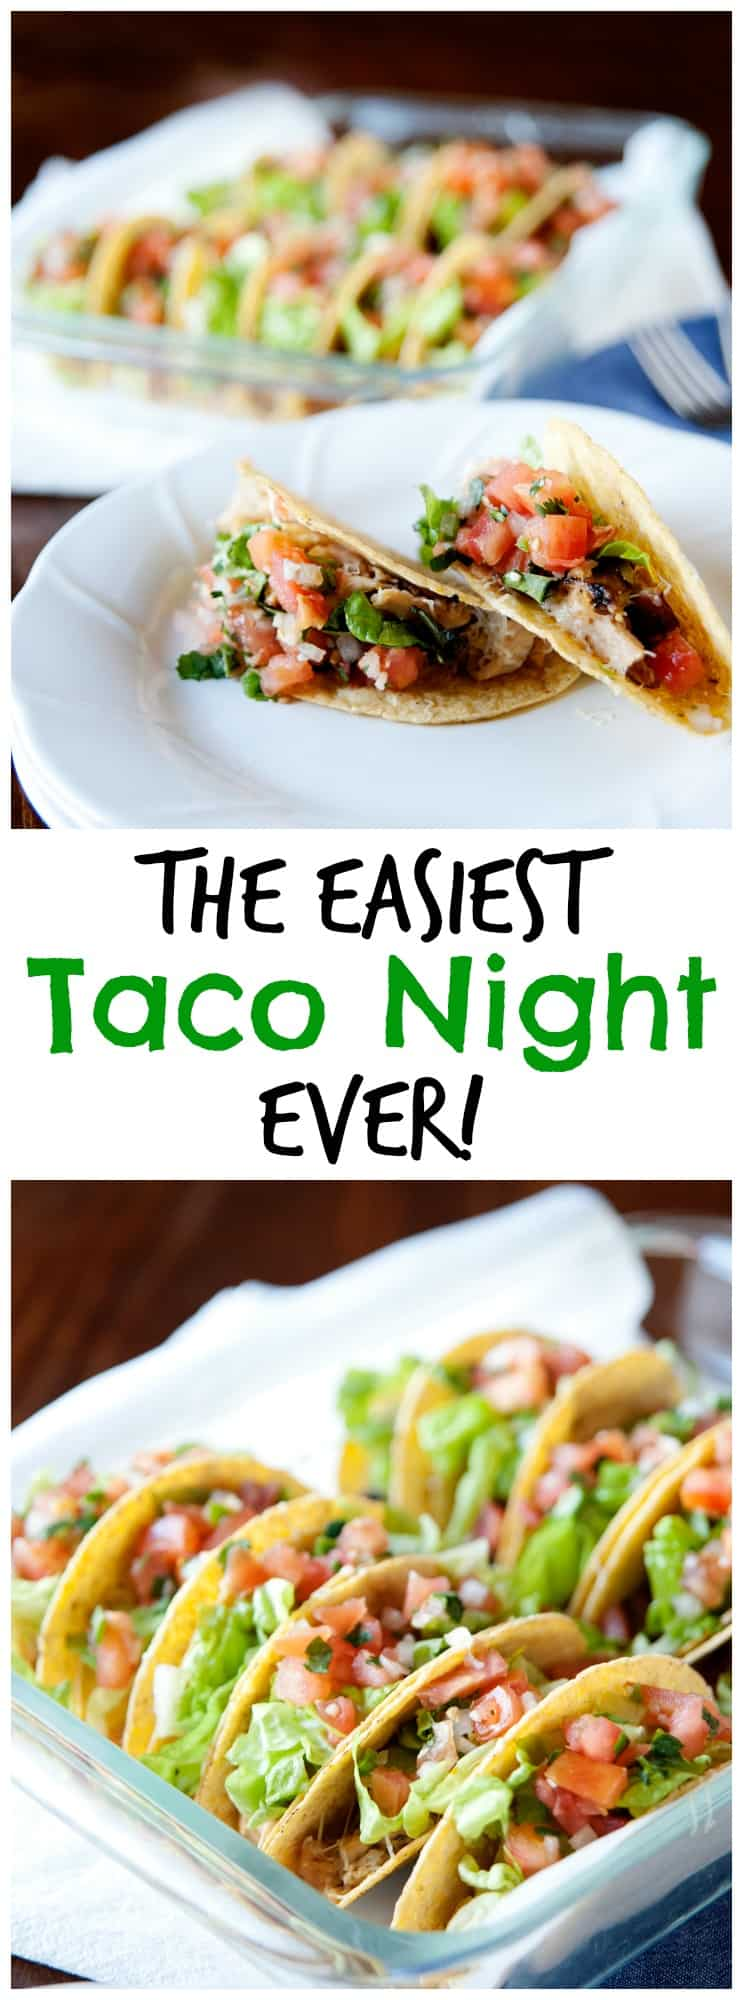 Tired of eating cold tacos? This easy taco night recipe allows you to be the last one at the table and enjoy a warm dinner - for once!